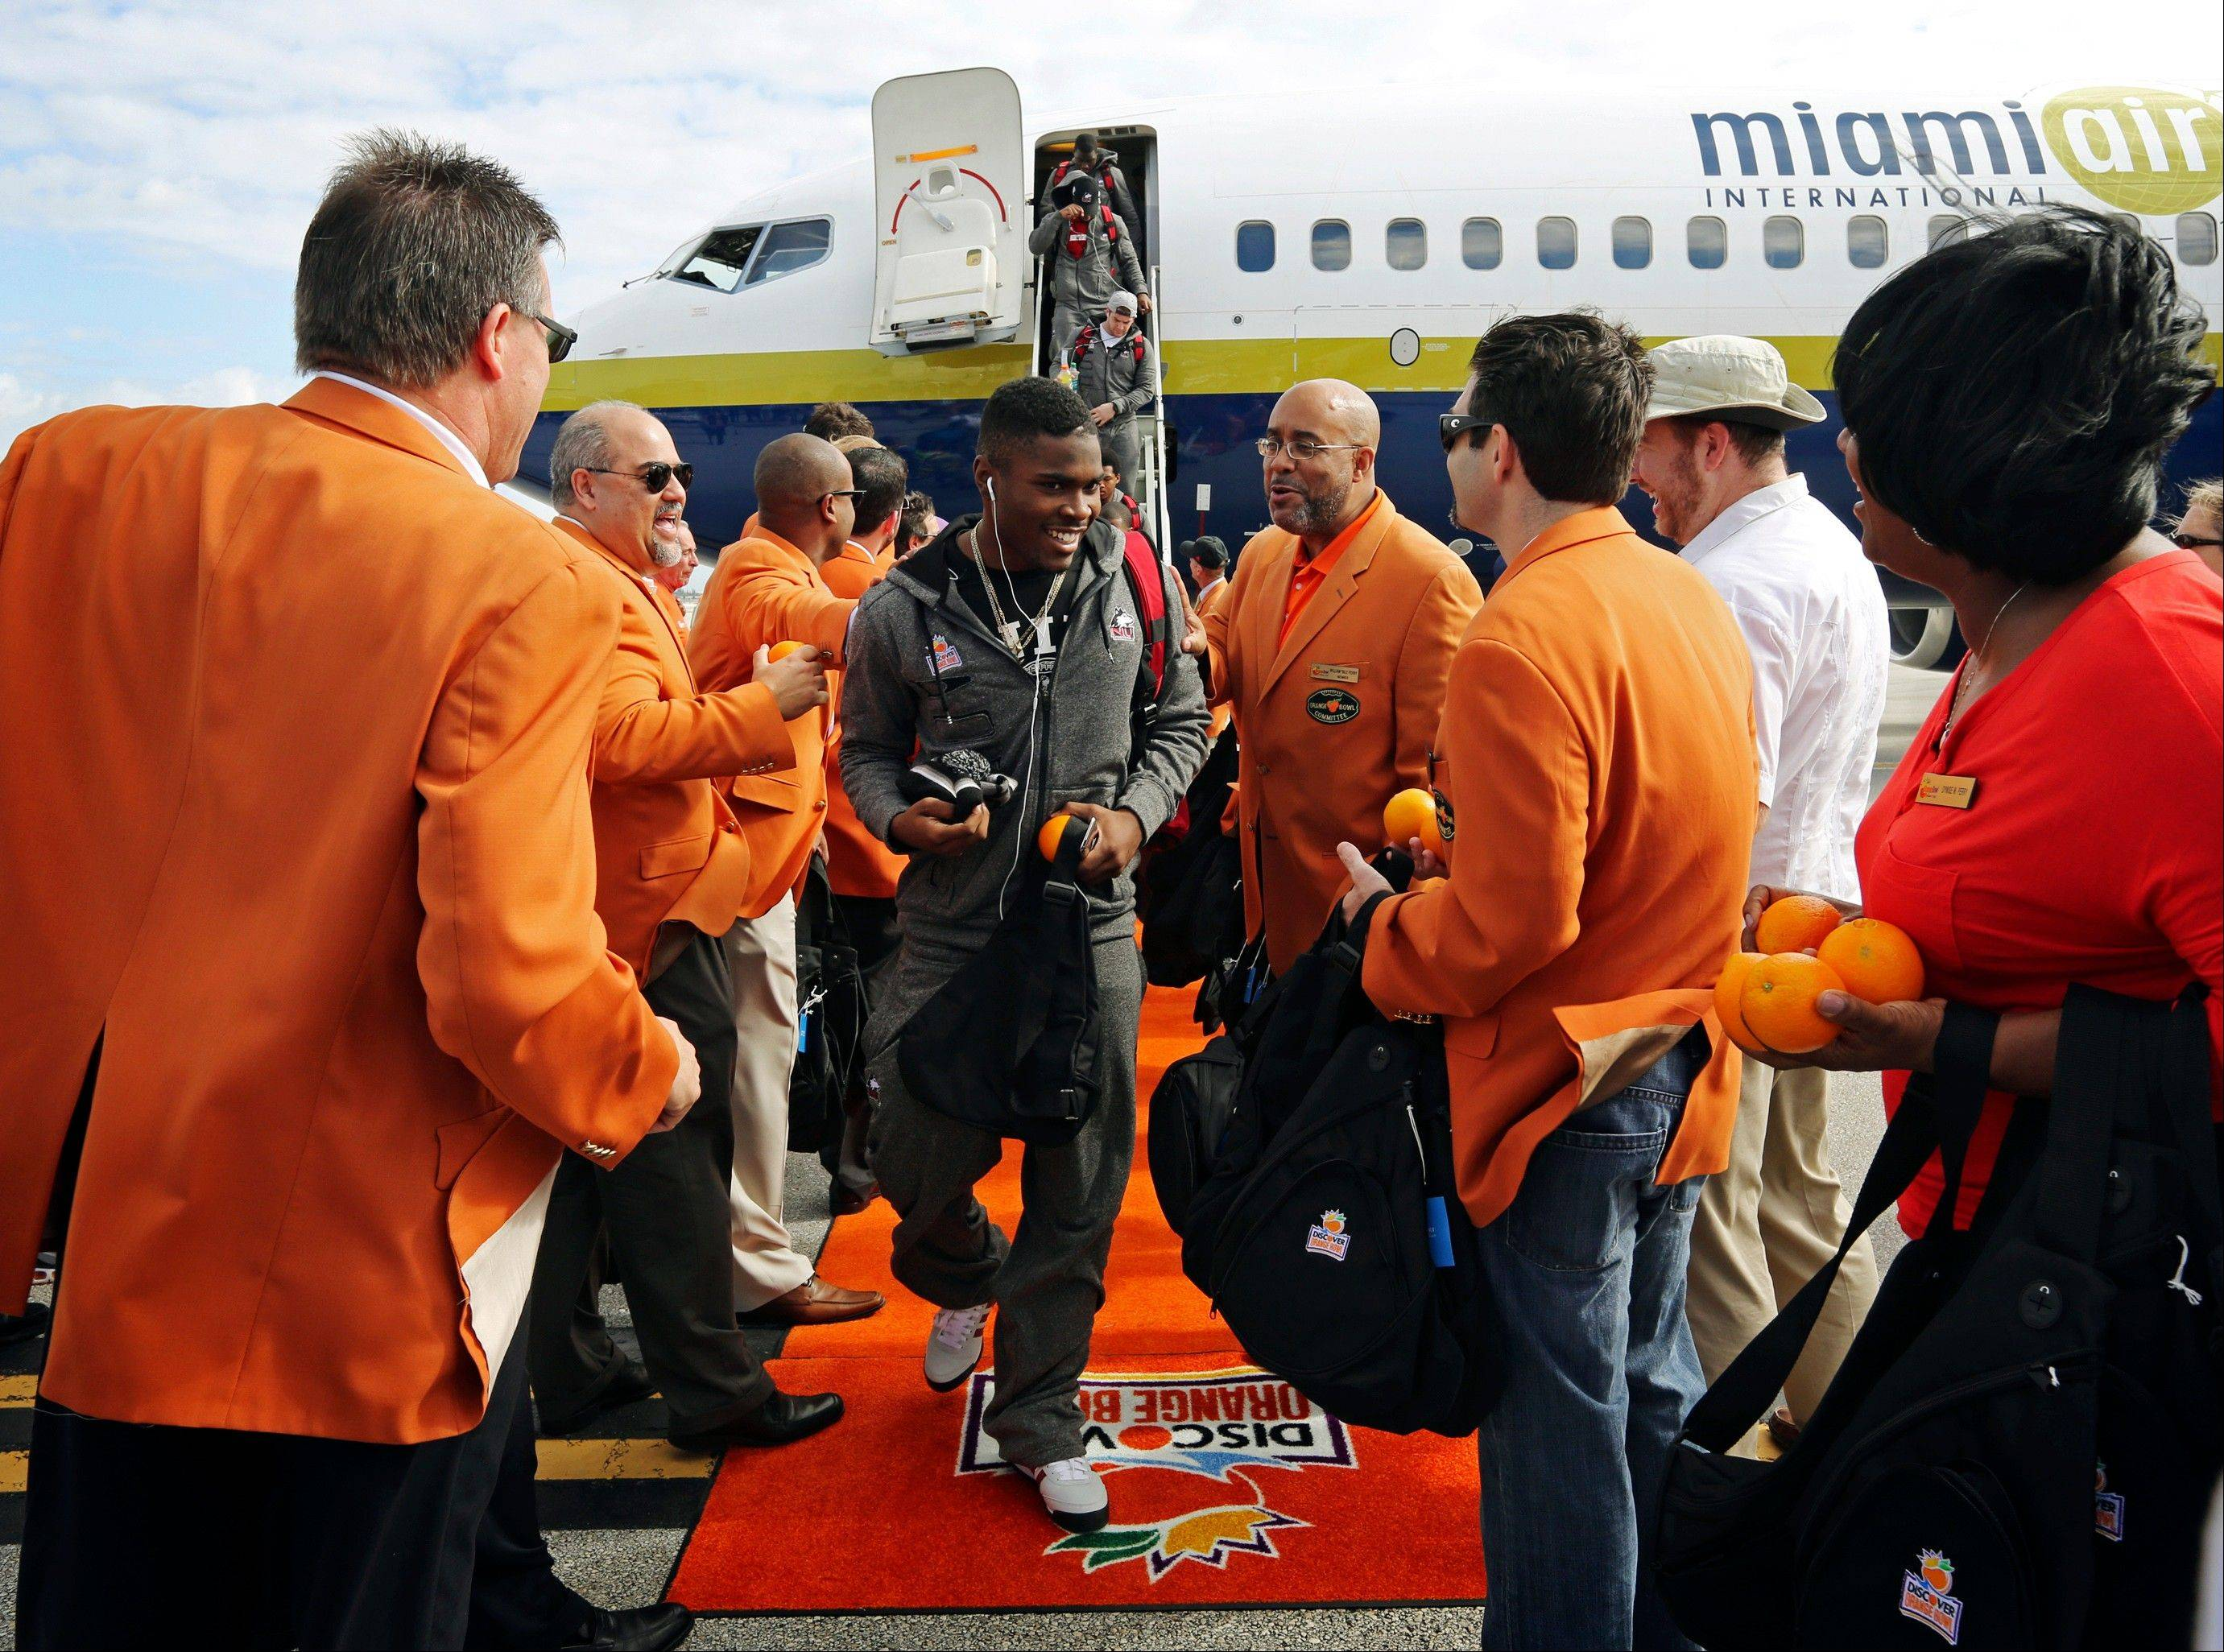 Northern Illinois players are greeted Wednesday by Orange Bowl Committee Members handing out oranges and gift bags as the team arrives at Miami International Airport.